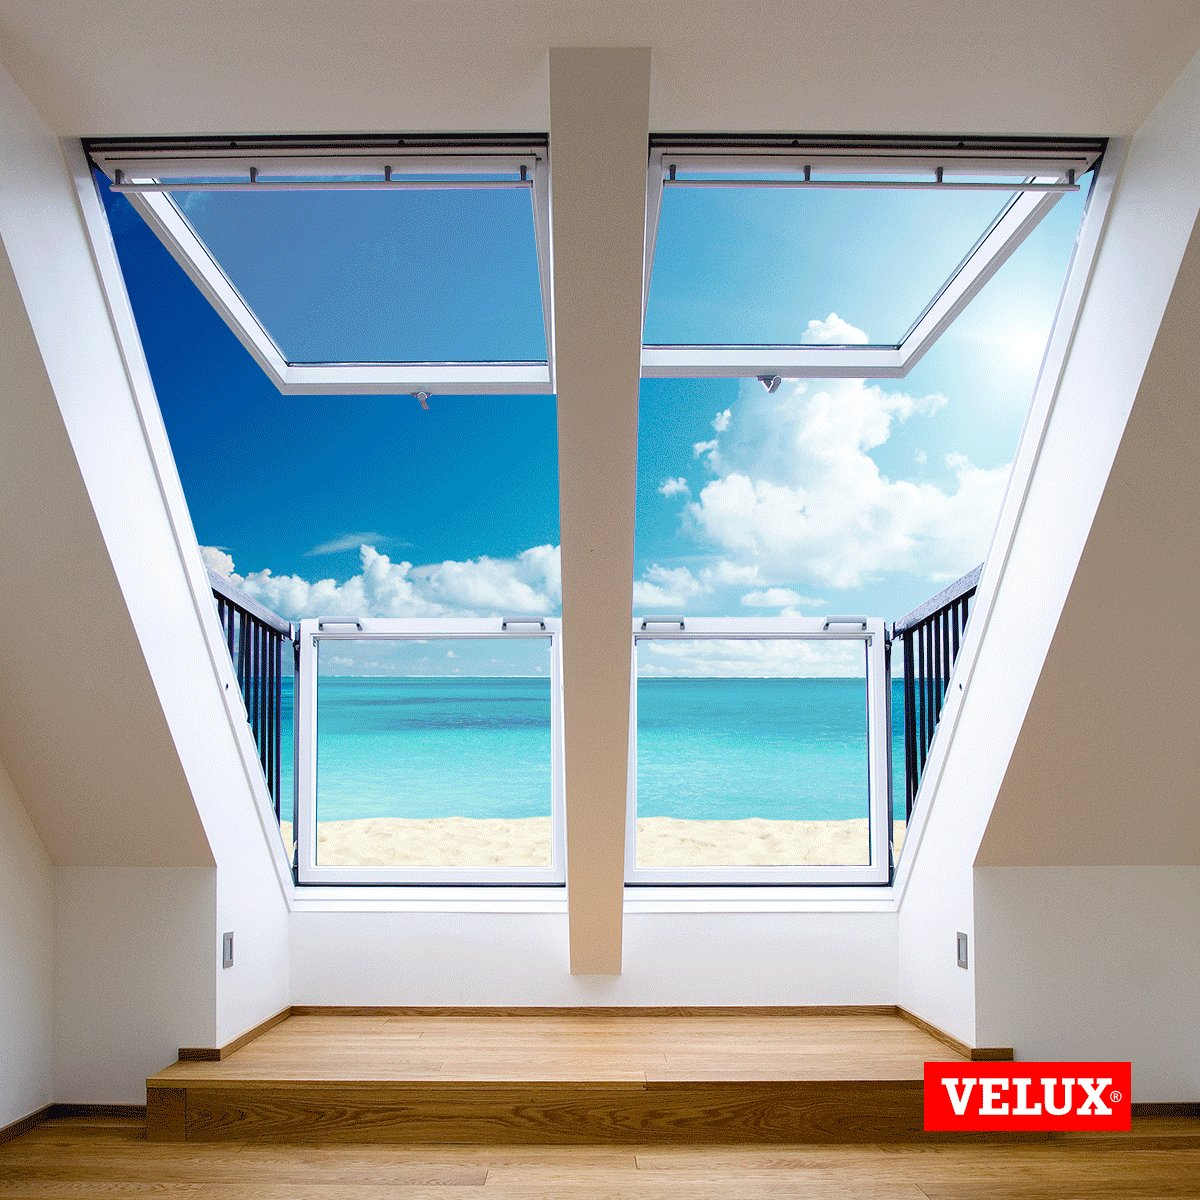 #Breathtaking views from the #VELUX CABRIO Balcony Roof #window can brighten any day! https://t.co/oVVTfz8UZA